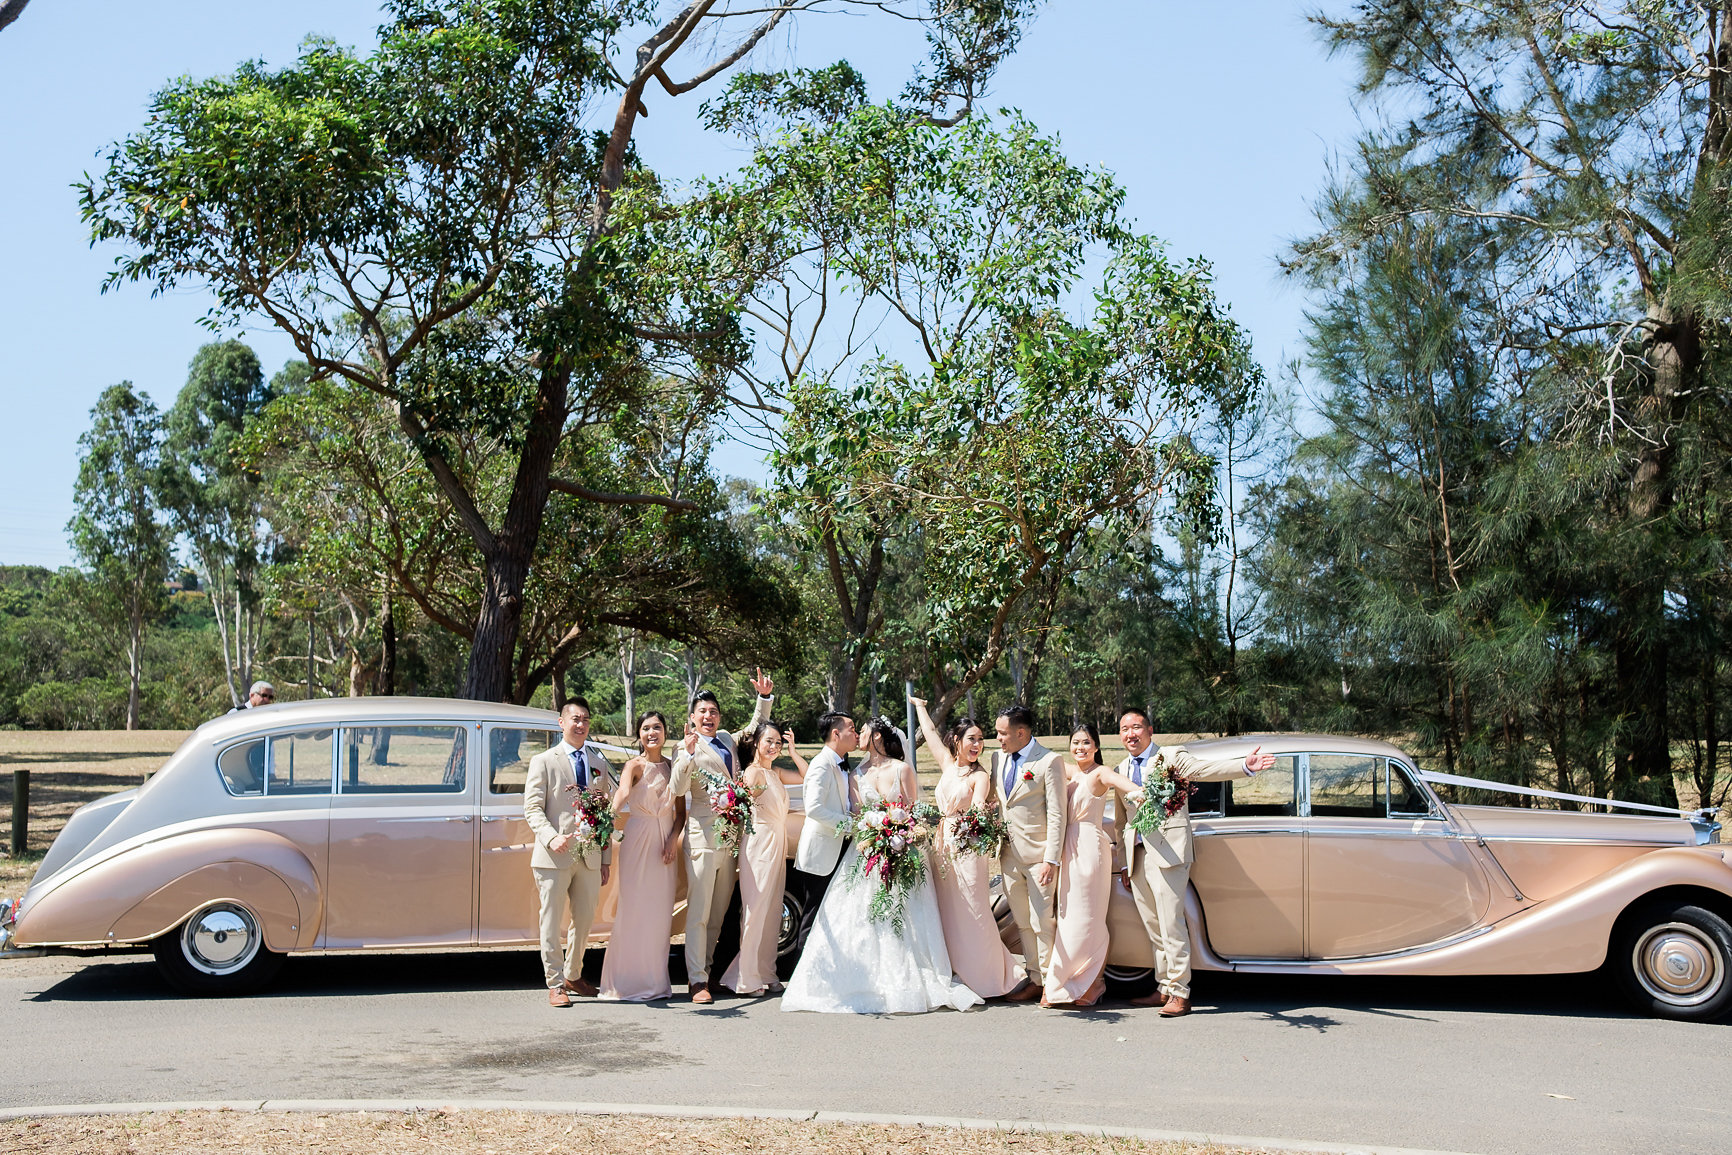 Sydney Wedding Photography Crystal Palace Function Centre - 0125.jpg